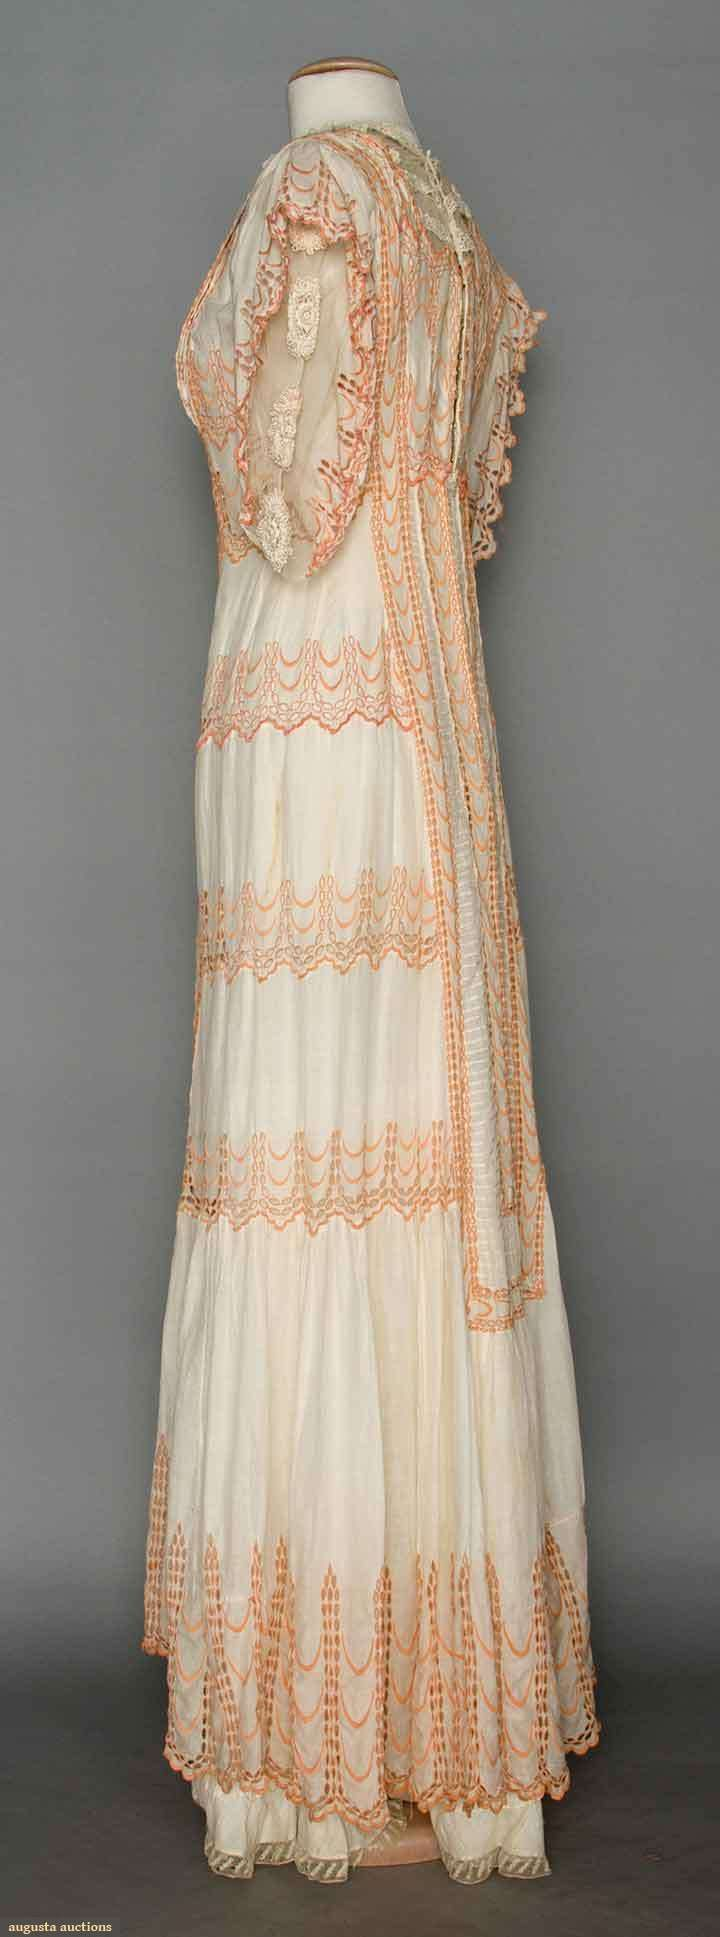 WHITE LACE TEA GOWN, c. 1910